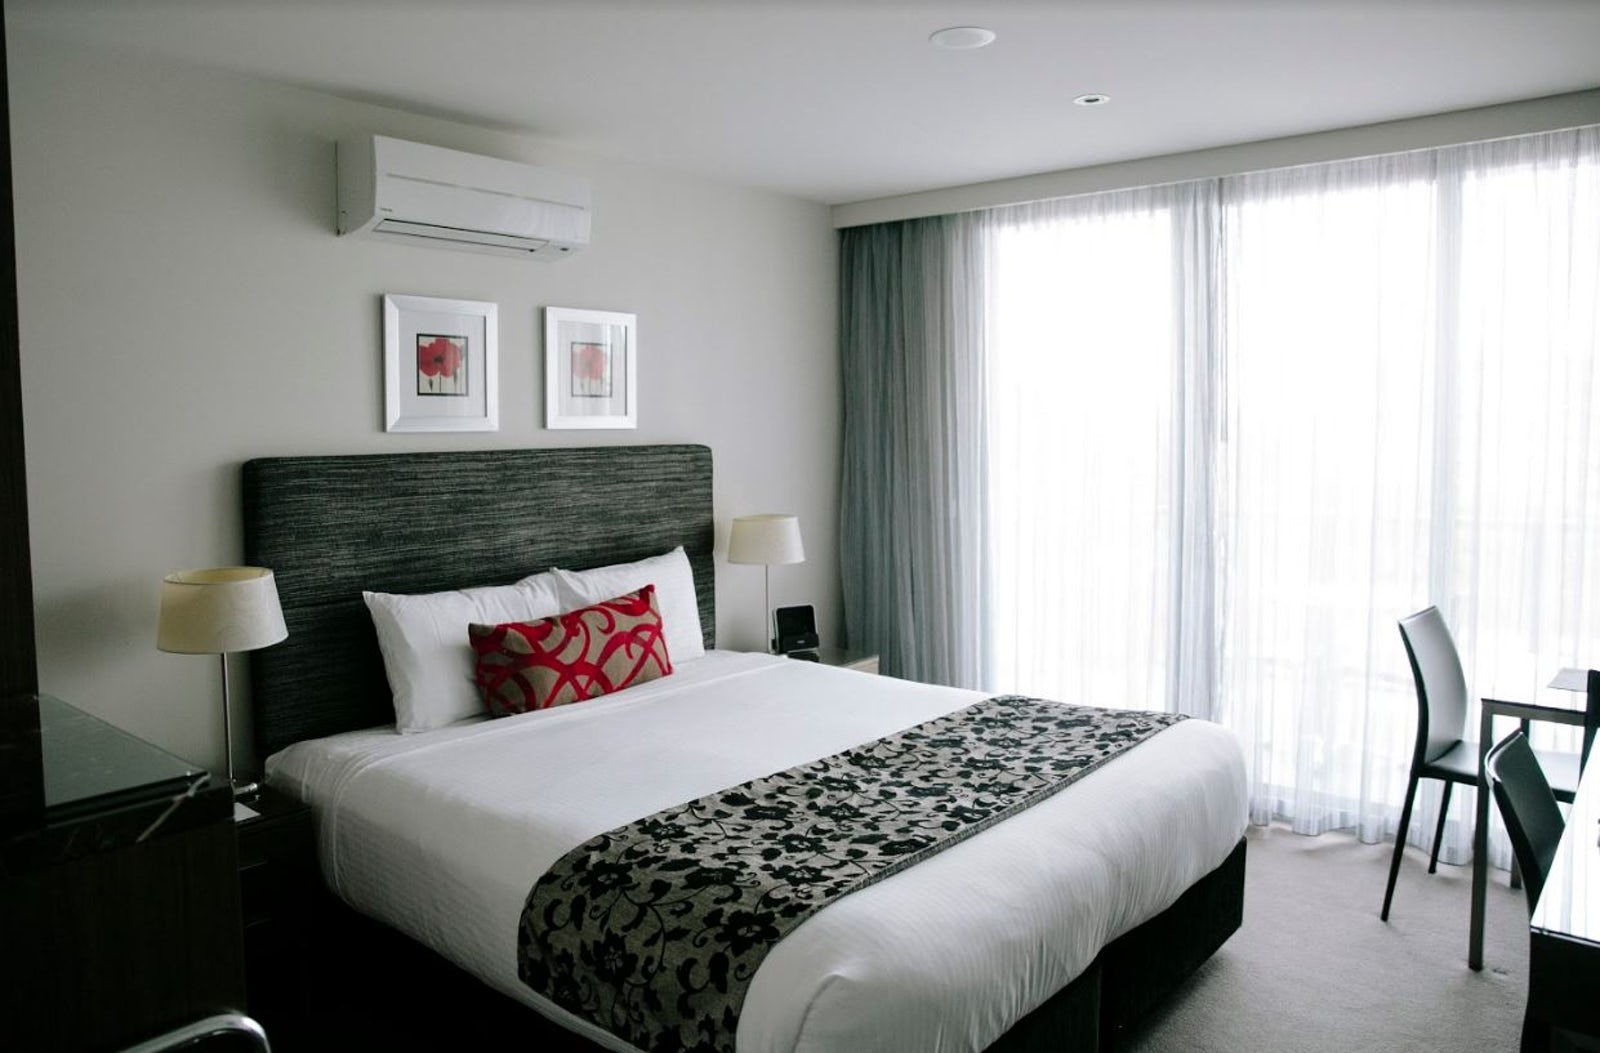 An image of a guests room at the Aria hotel on Dooring Street